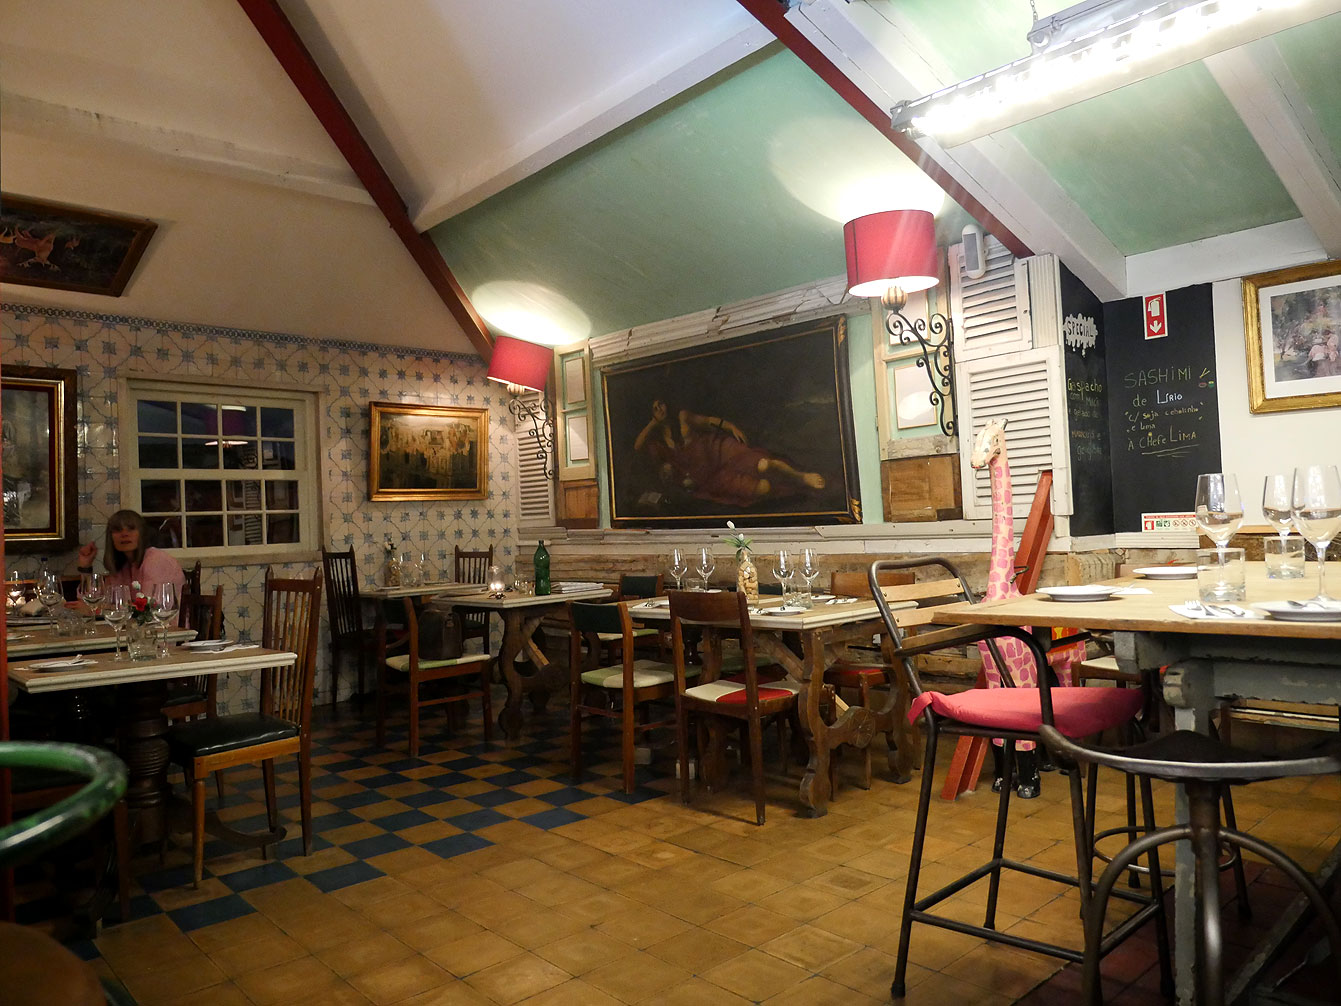 Lisbonne, the insolito, restaurant